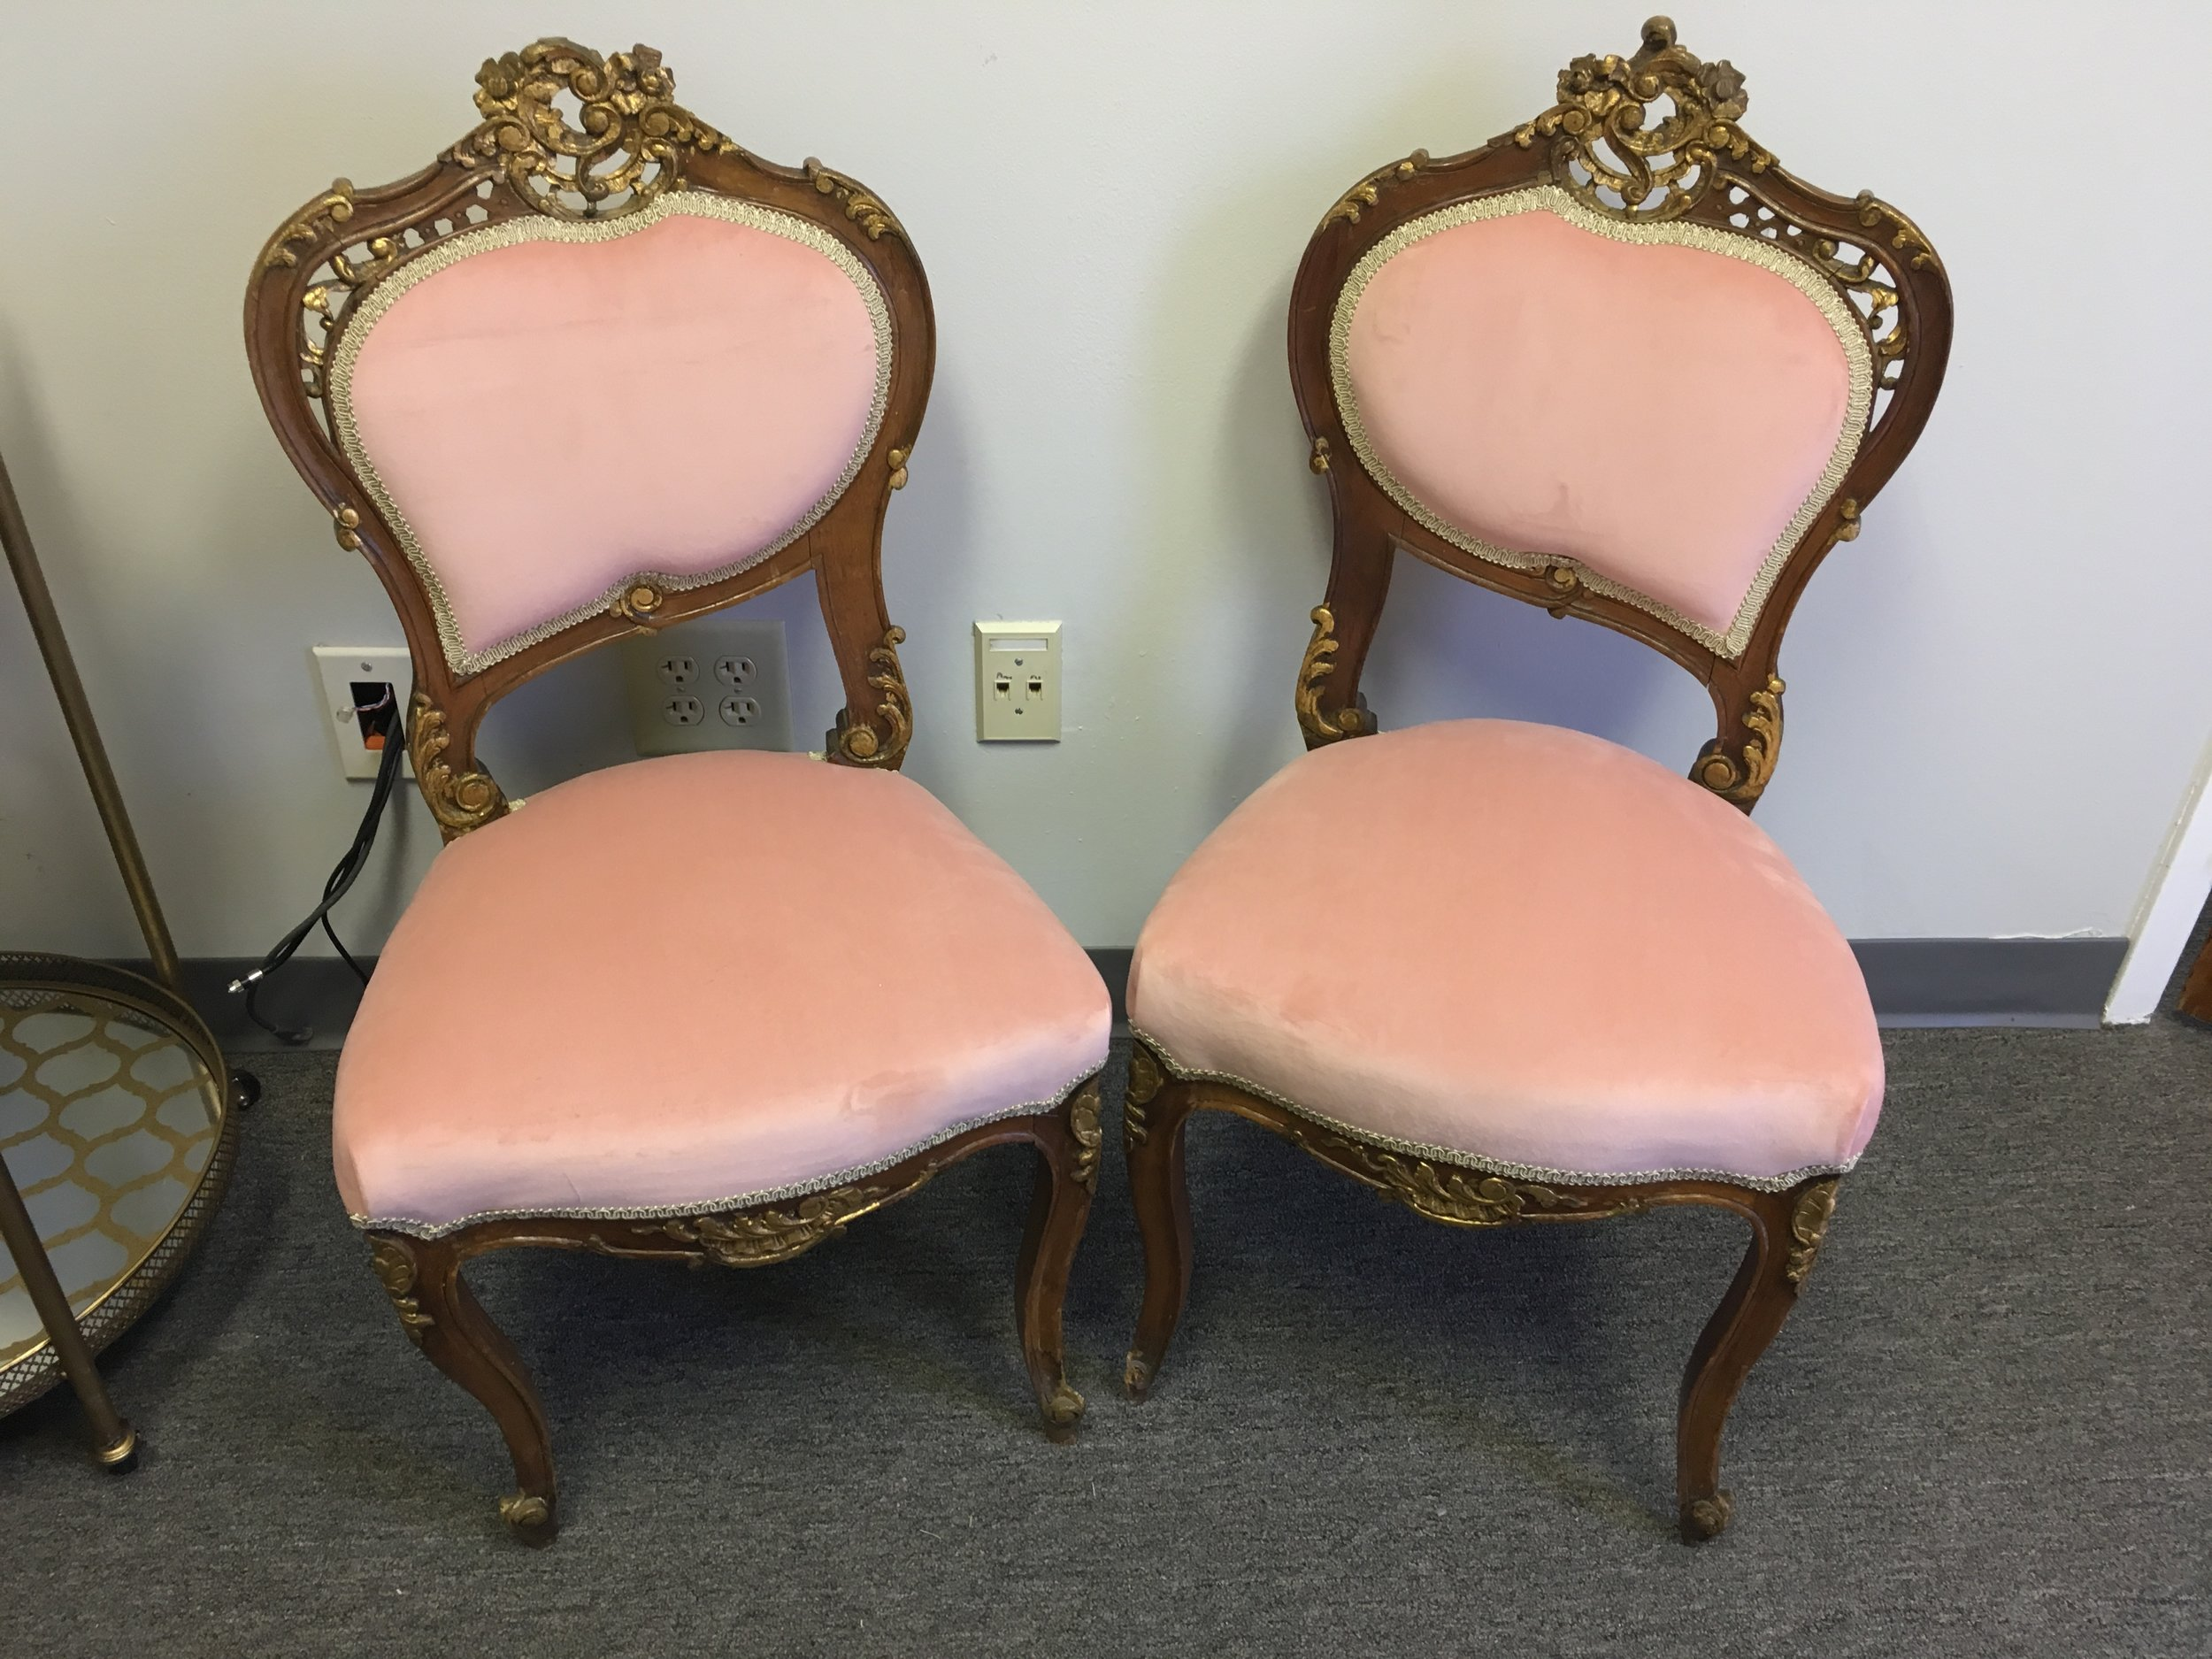 Pretty In Pink Sweetheart Chairs (2)